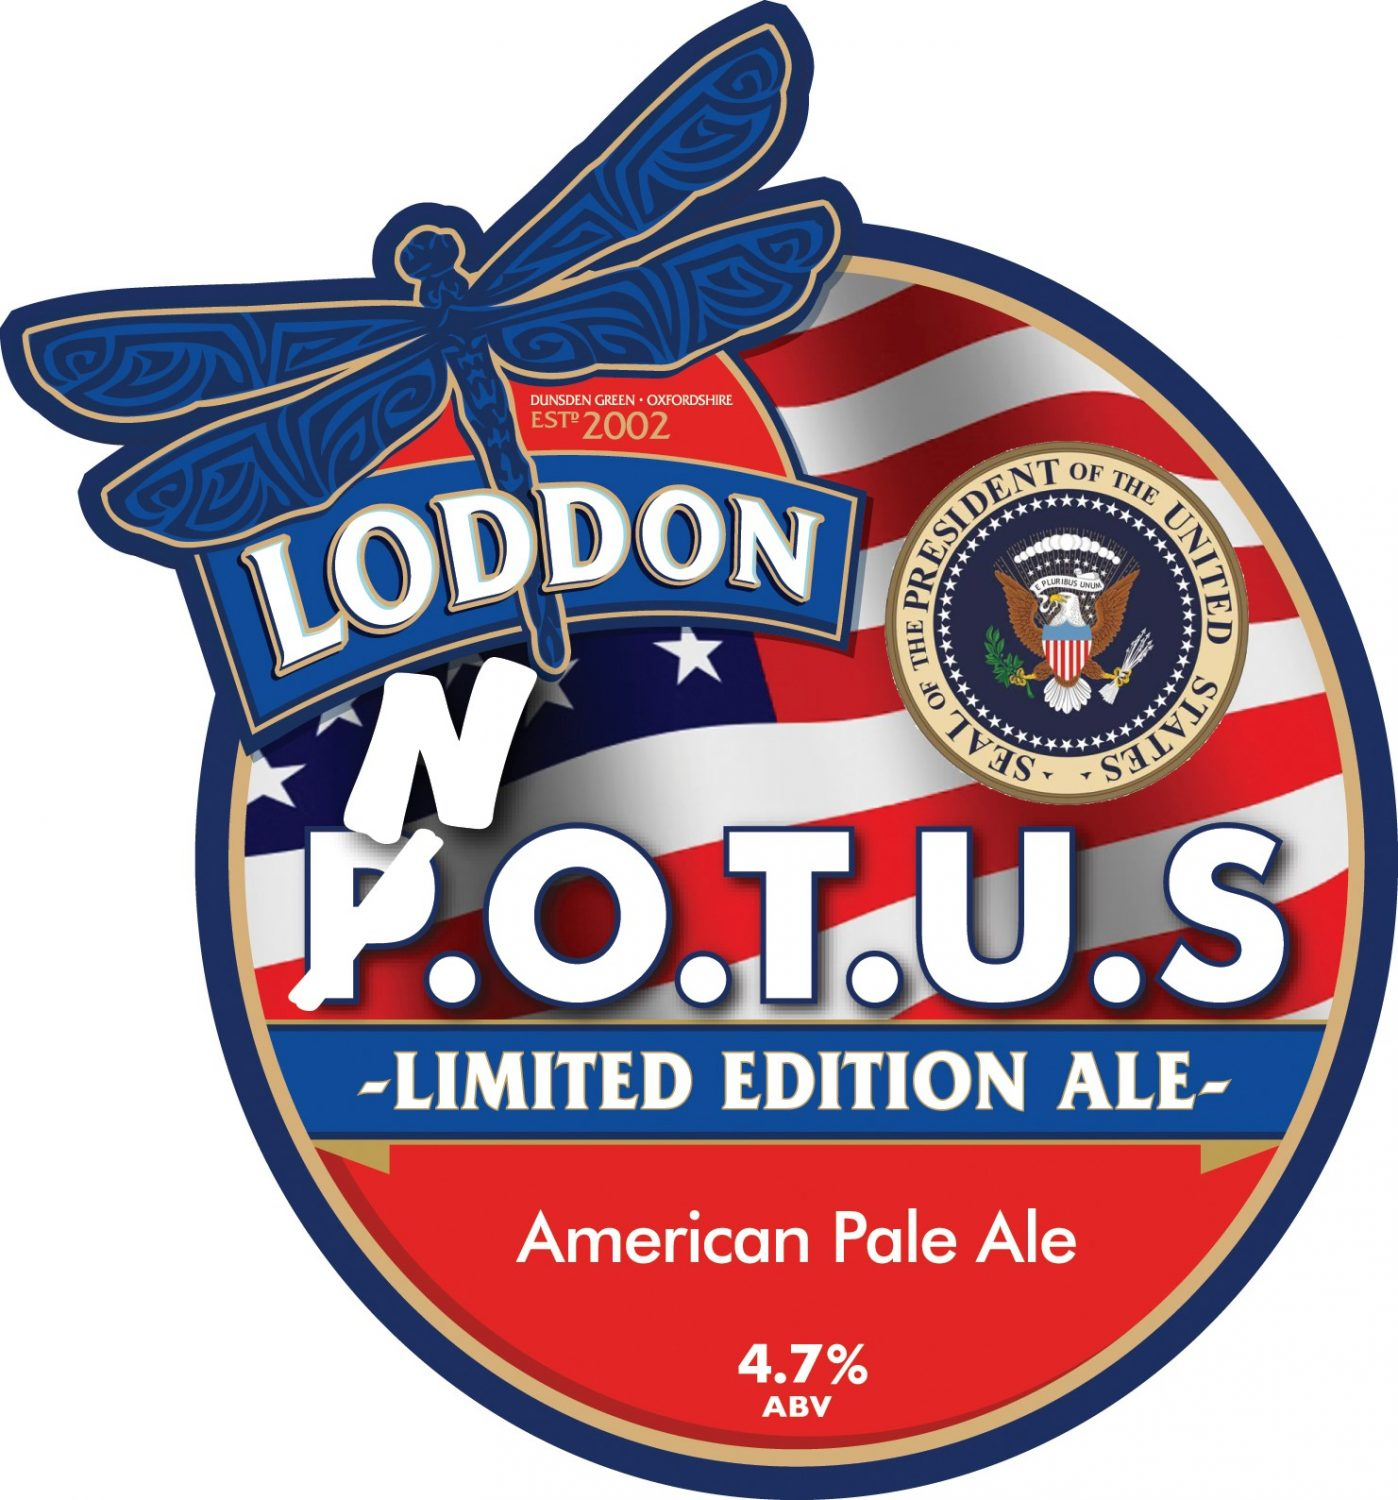 Loddon Brewery Limited Edition Ale - American Pale Ale